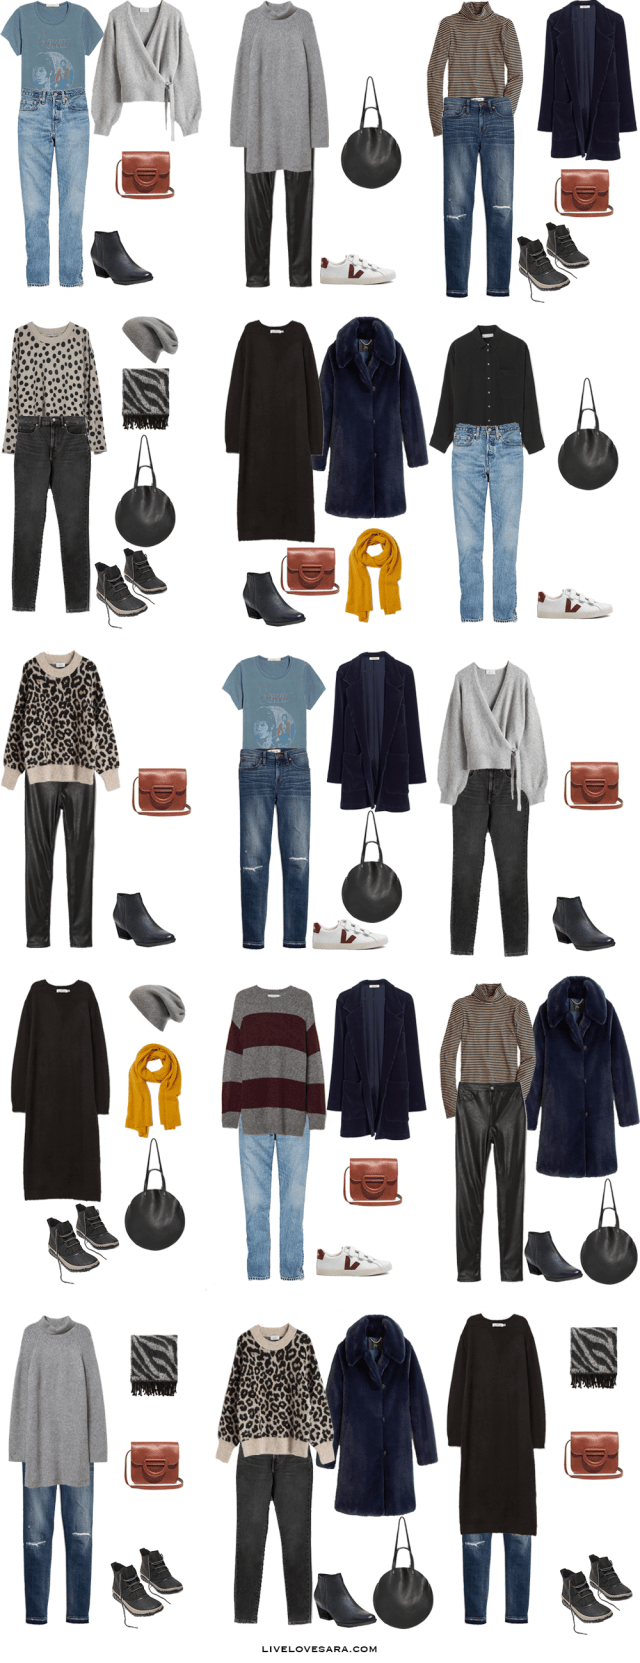 If you are wondering what to pack for a month vacation to Europe at Christmas, you can see some outfit ideas here. What to Pack for Europe Packing Light List | What to pack for the Christmas | What to Pack for Europe at Christmas | What to Pack for winter | Packing Light | Packing List | Travel Light | Travel Wardrobe | Travel Capsule | Capsule | Christmas | Europe